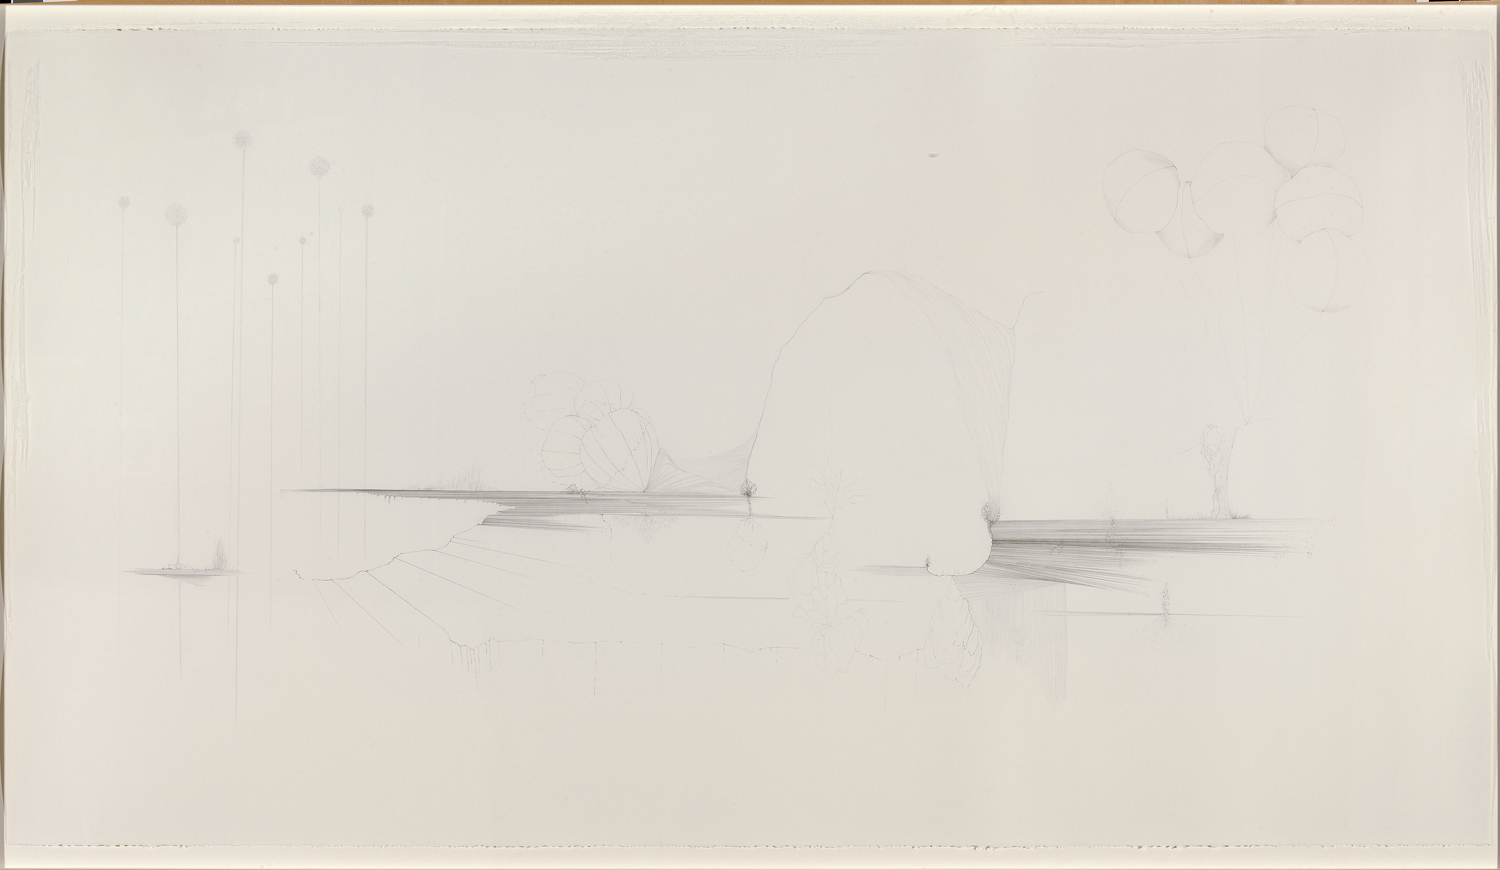 Fissures and Dandelions, 2005-06, 79 in. long